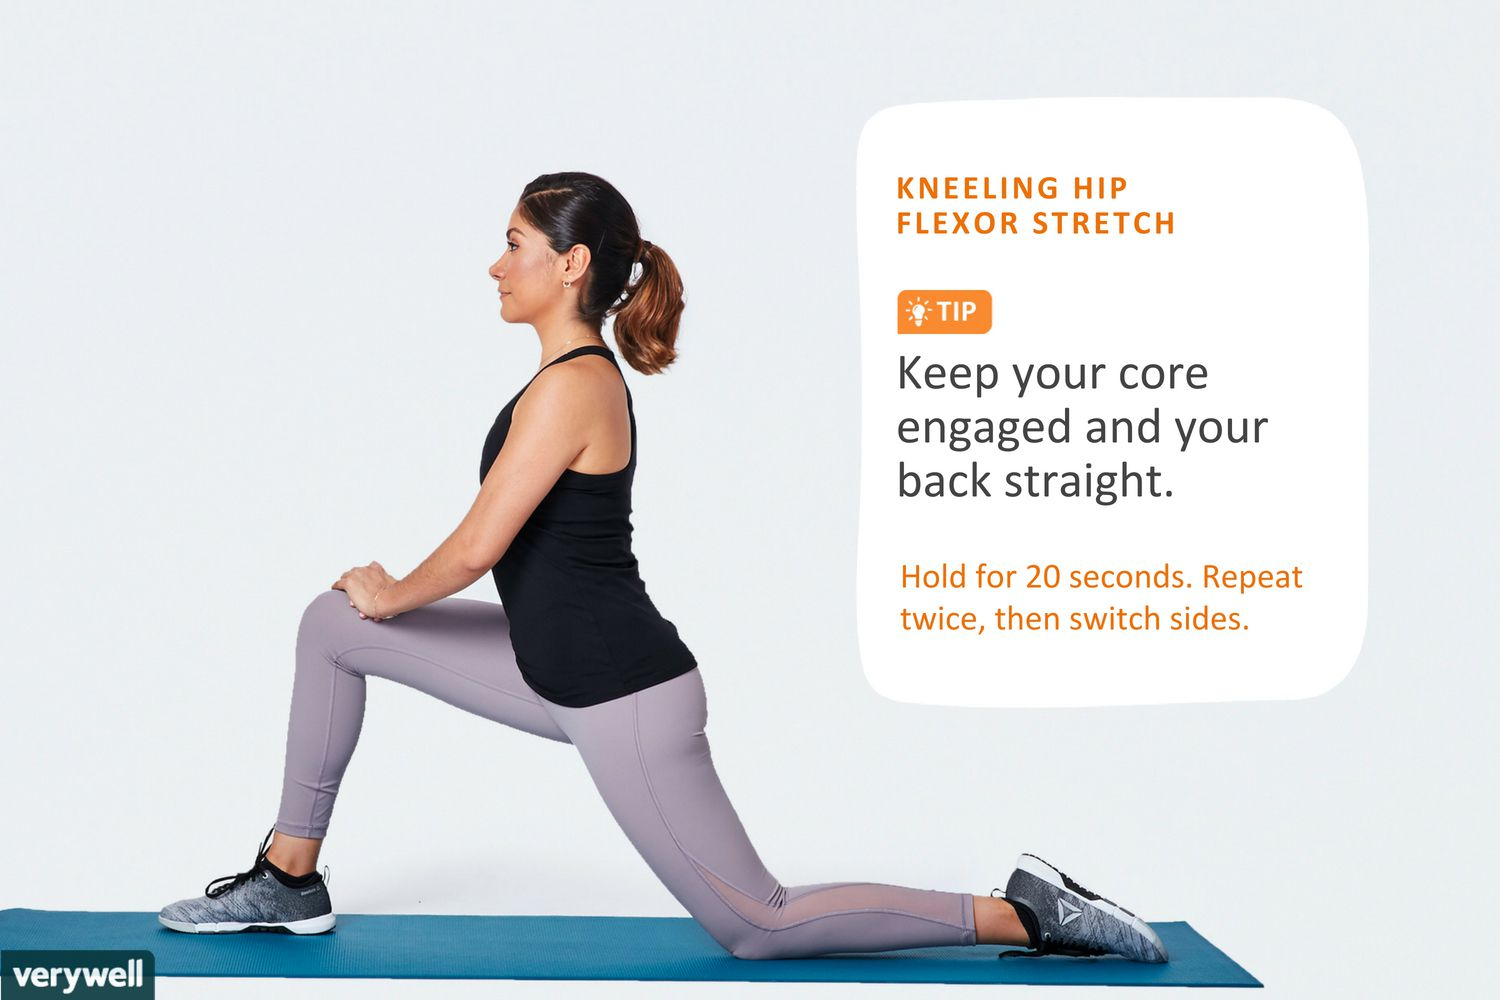 How Stretching Can Help Prevent ACL Injuries